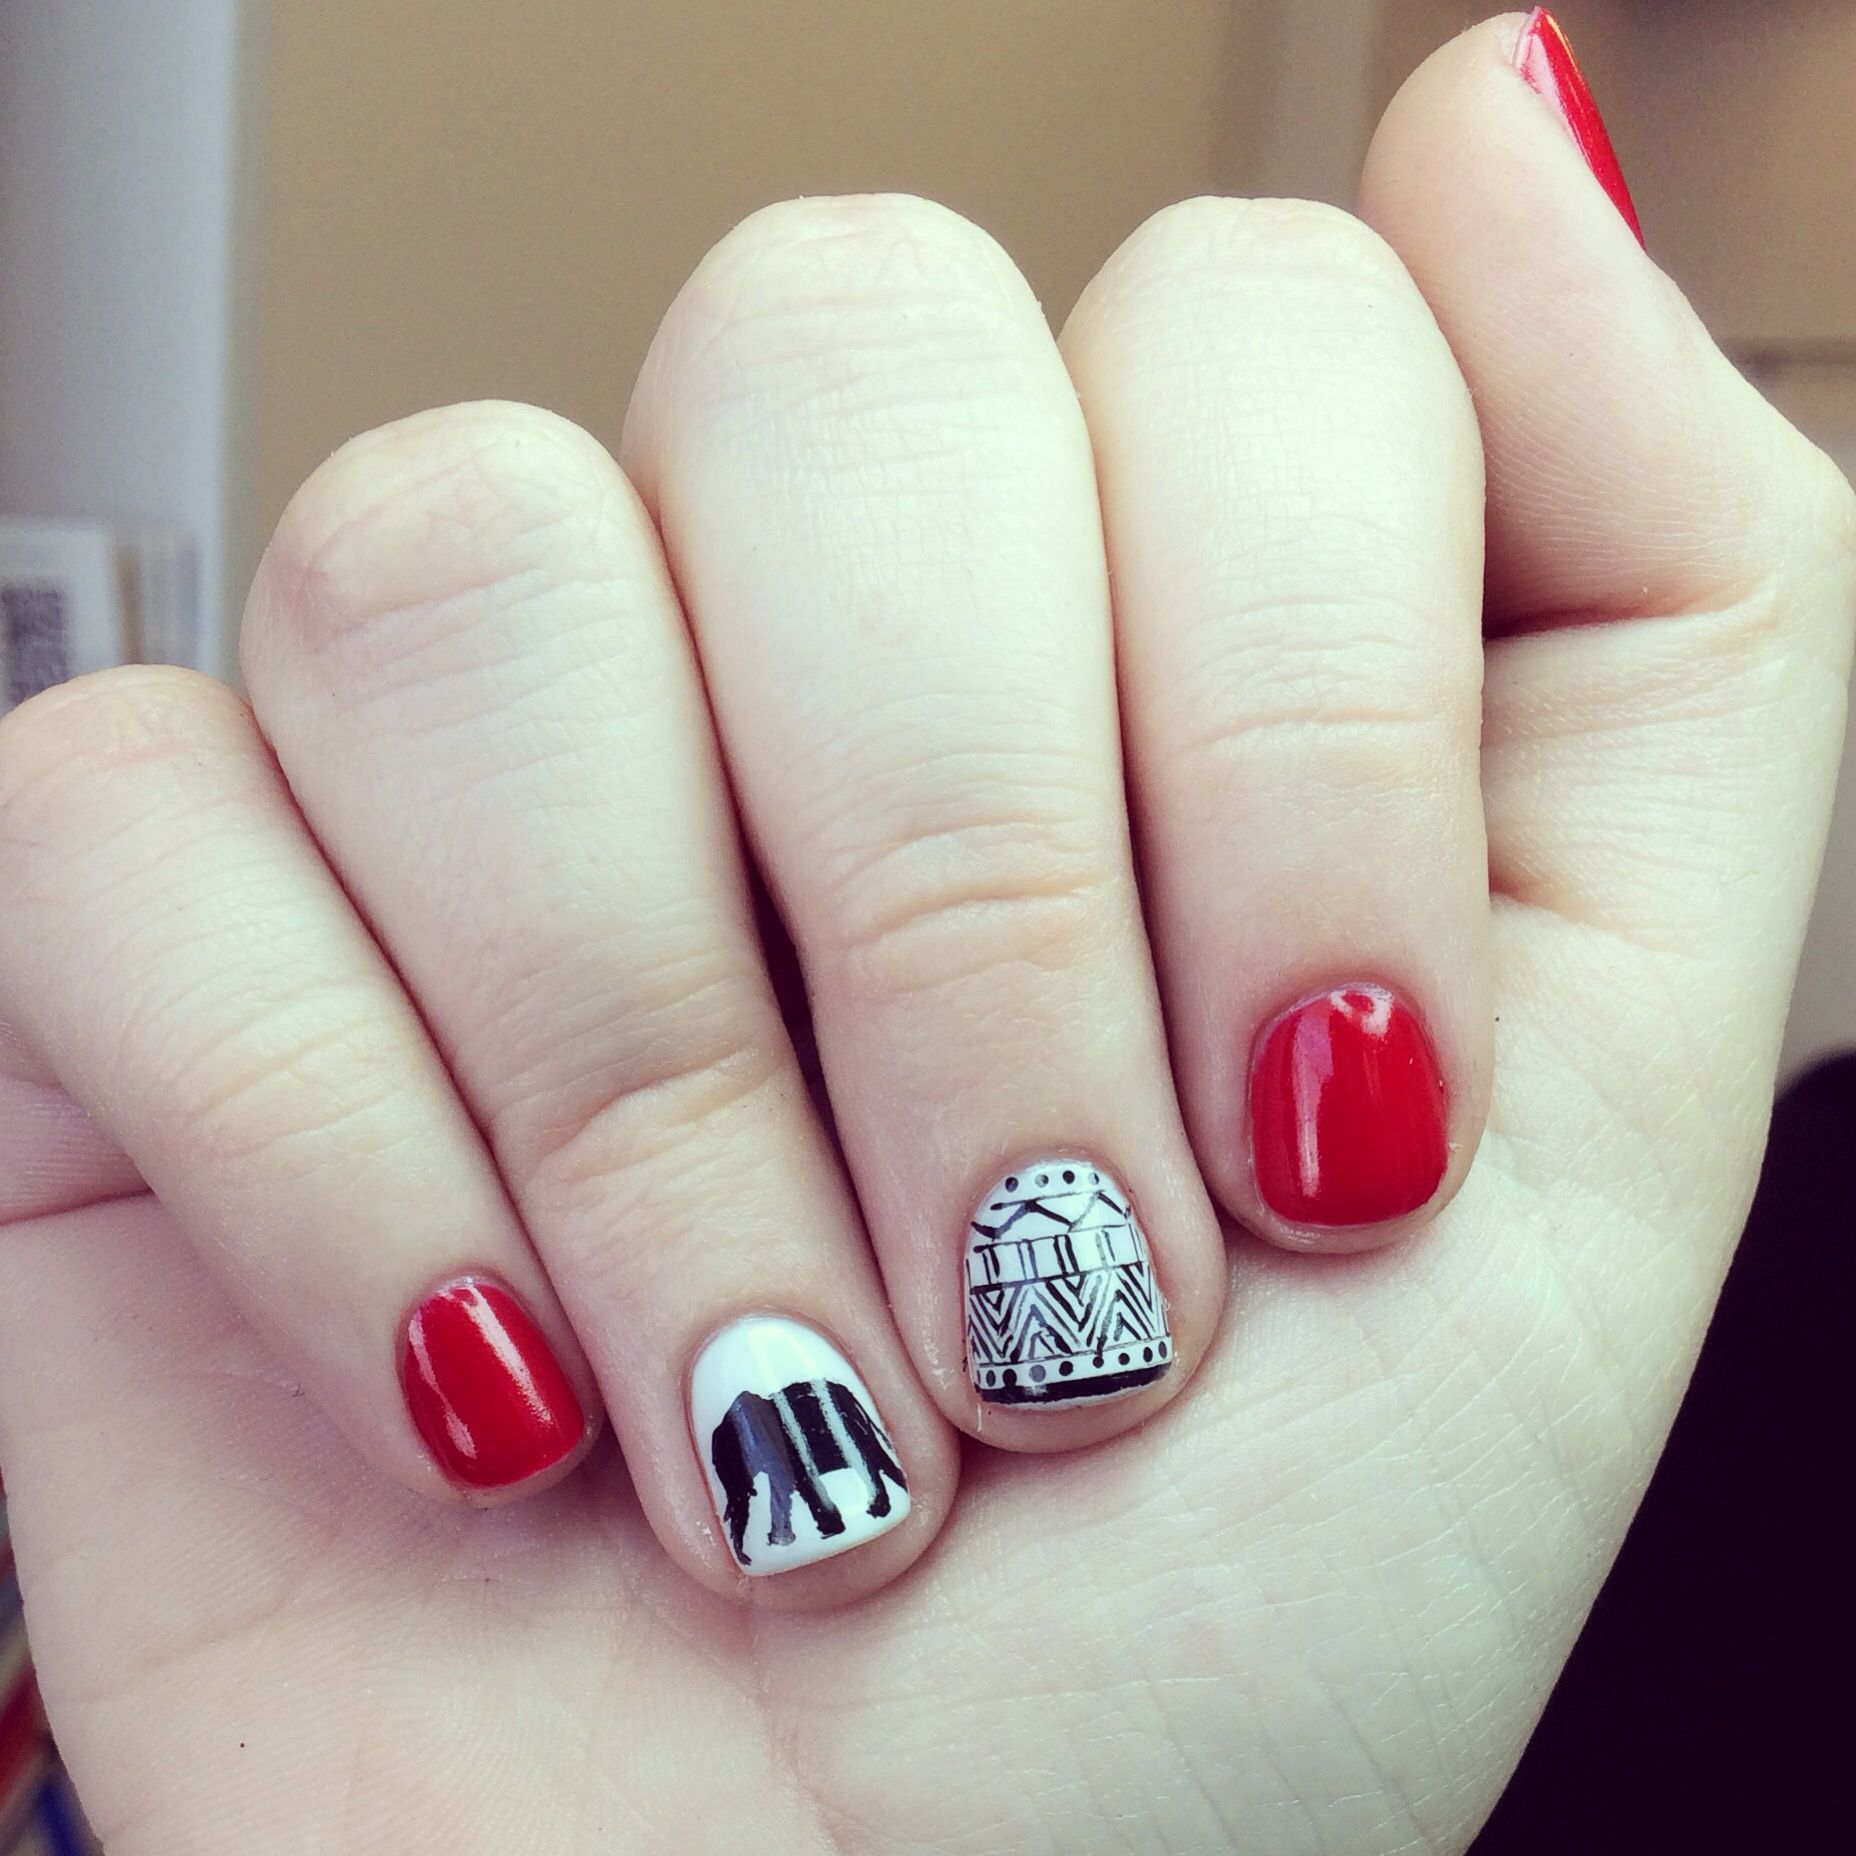 Tribal and elephant nail art silhouette gel manicure opi gel tribal and elephant nail art silhouette gel manicure opi gel polish fun prinsesfo Gallery